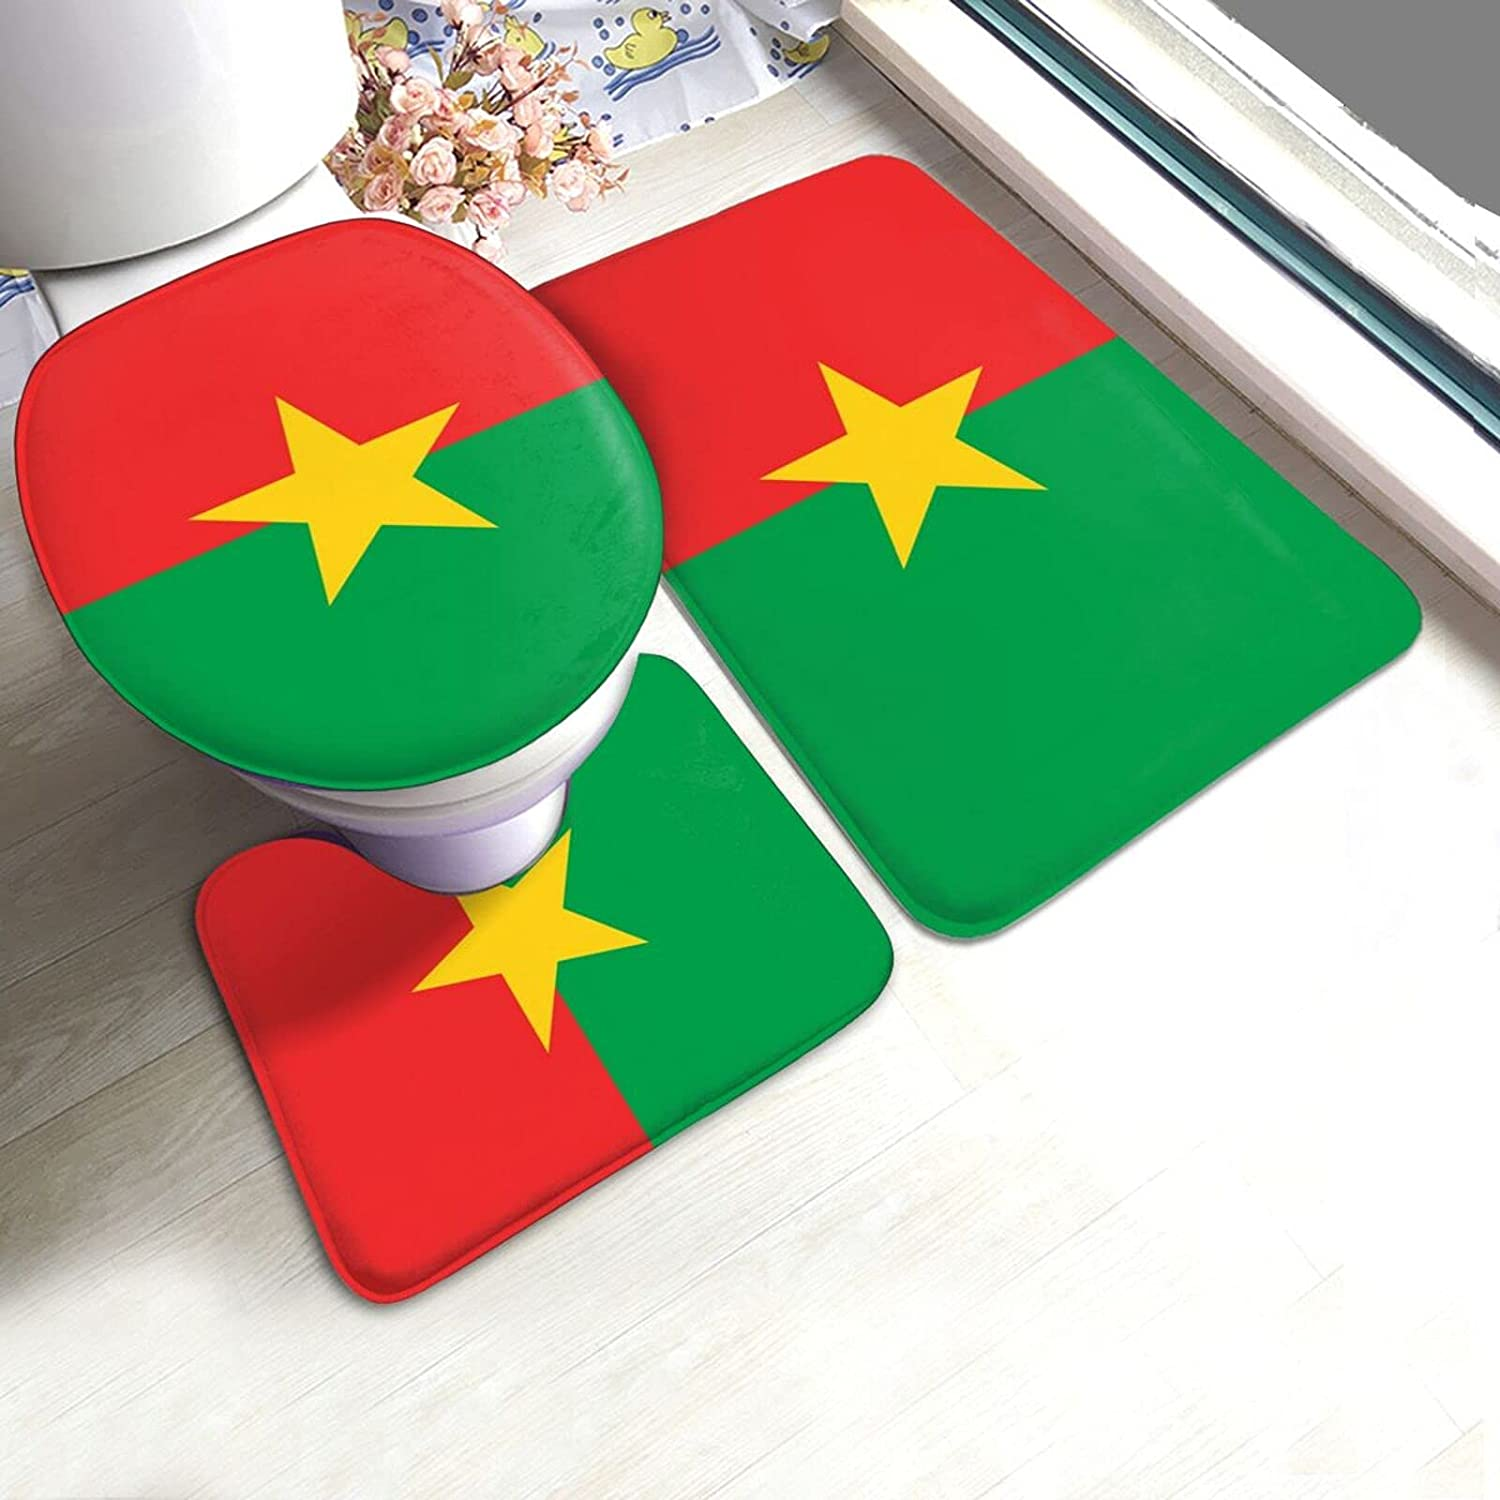 Burkina Faso Flag 3 Pieces Bathroom Rugs Luxurious Set Use Popular shop SEAL limited product is the lowest price challenge Flann